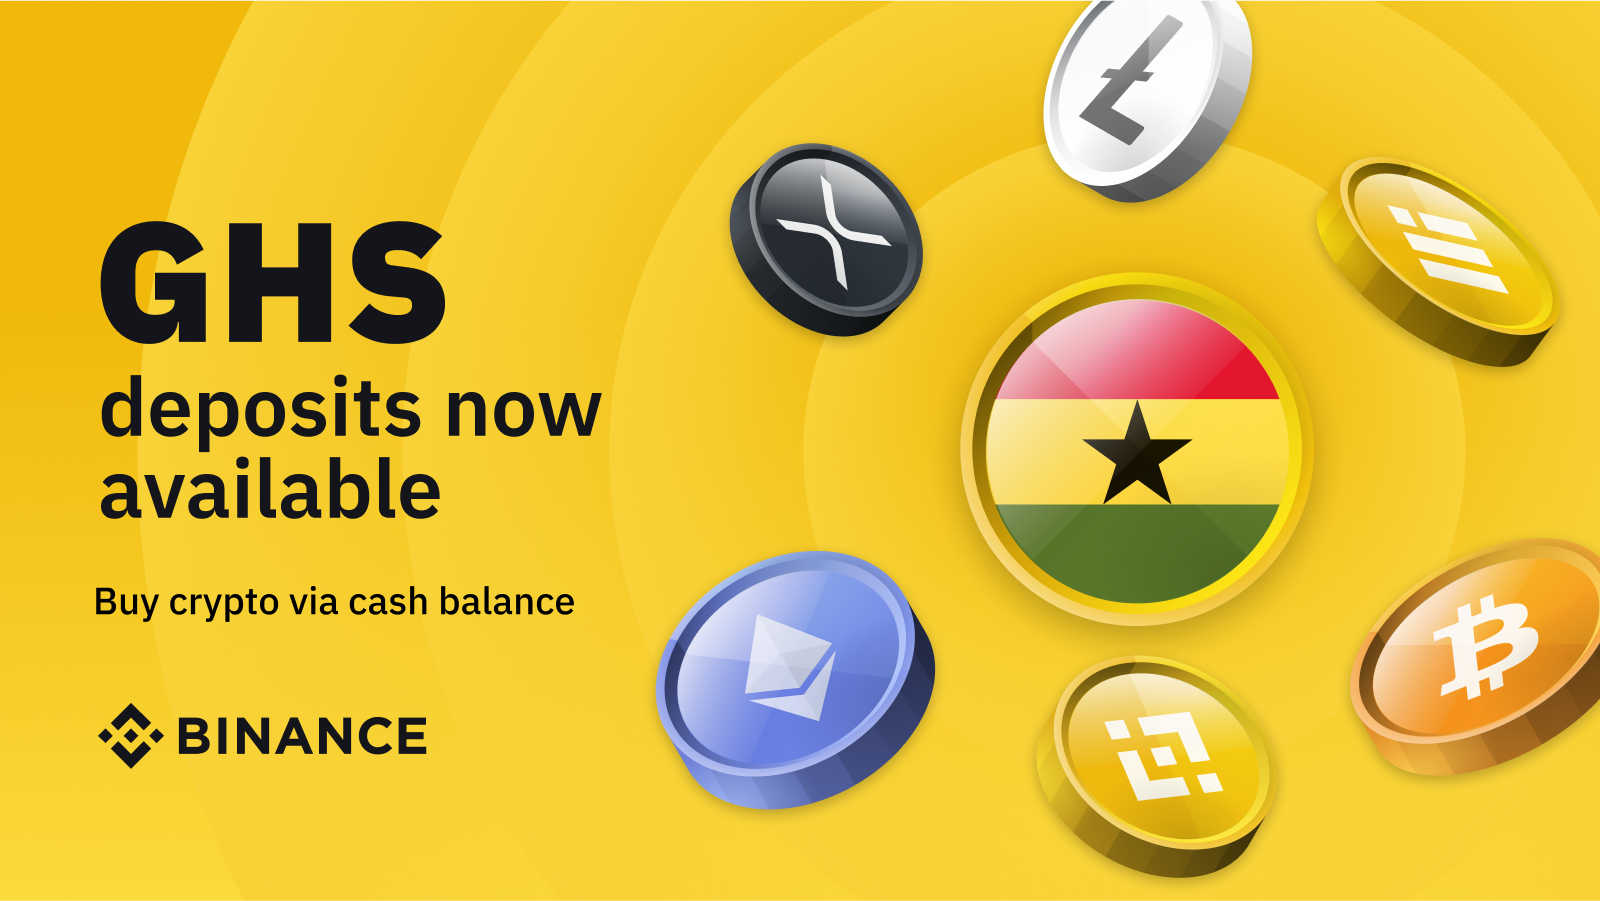 binance-launches-GHS-deposits-in-Ghana.png